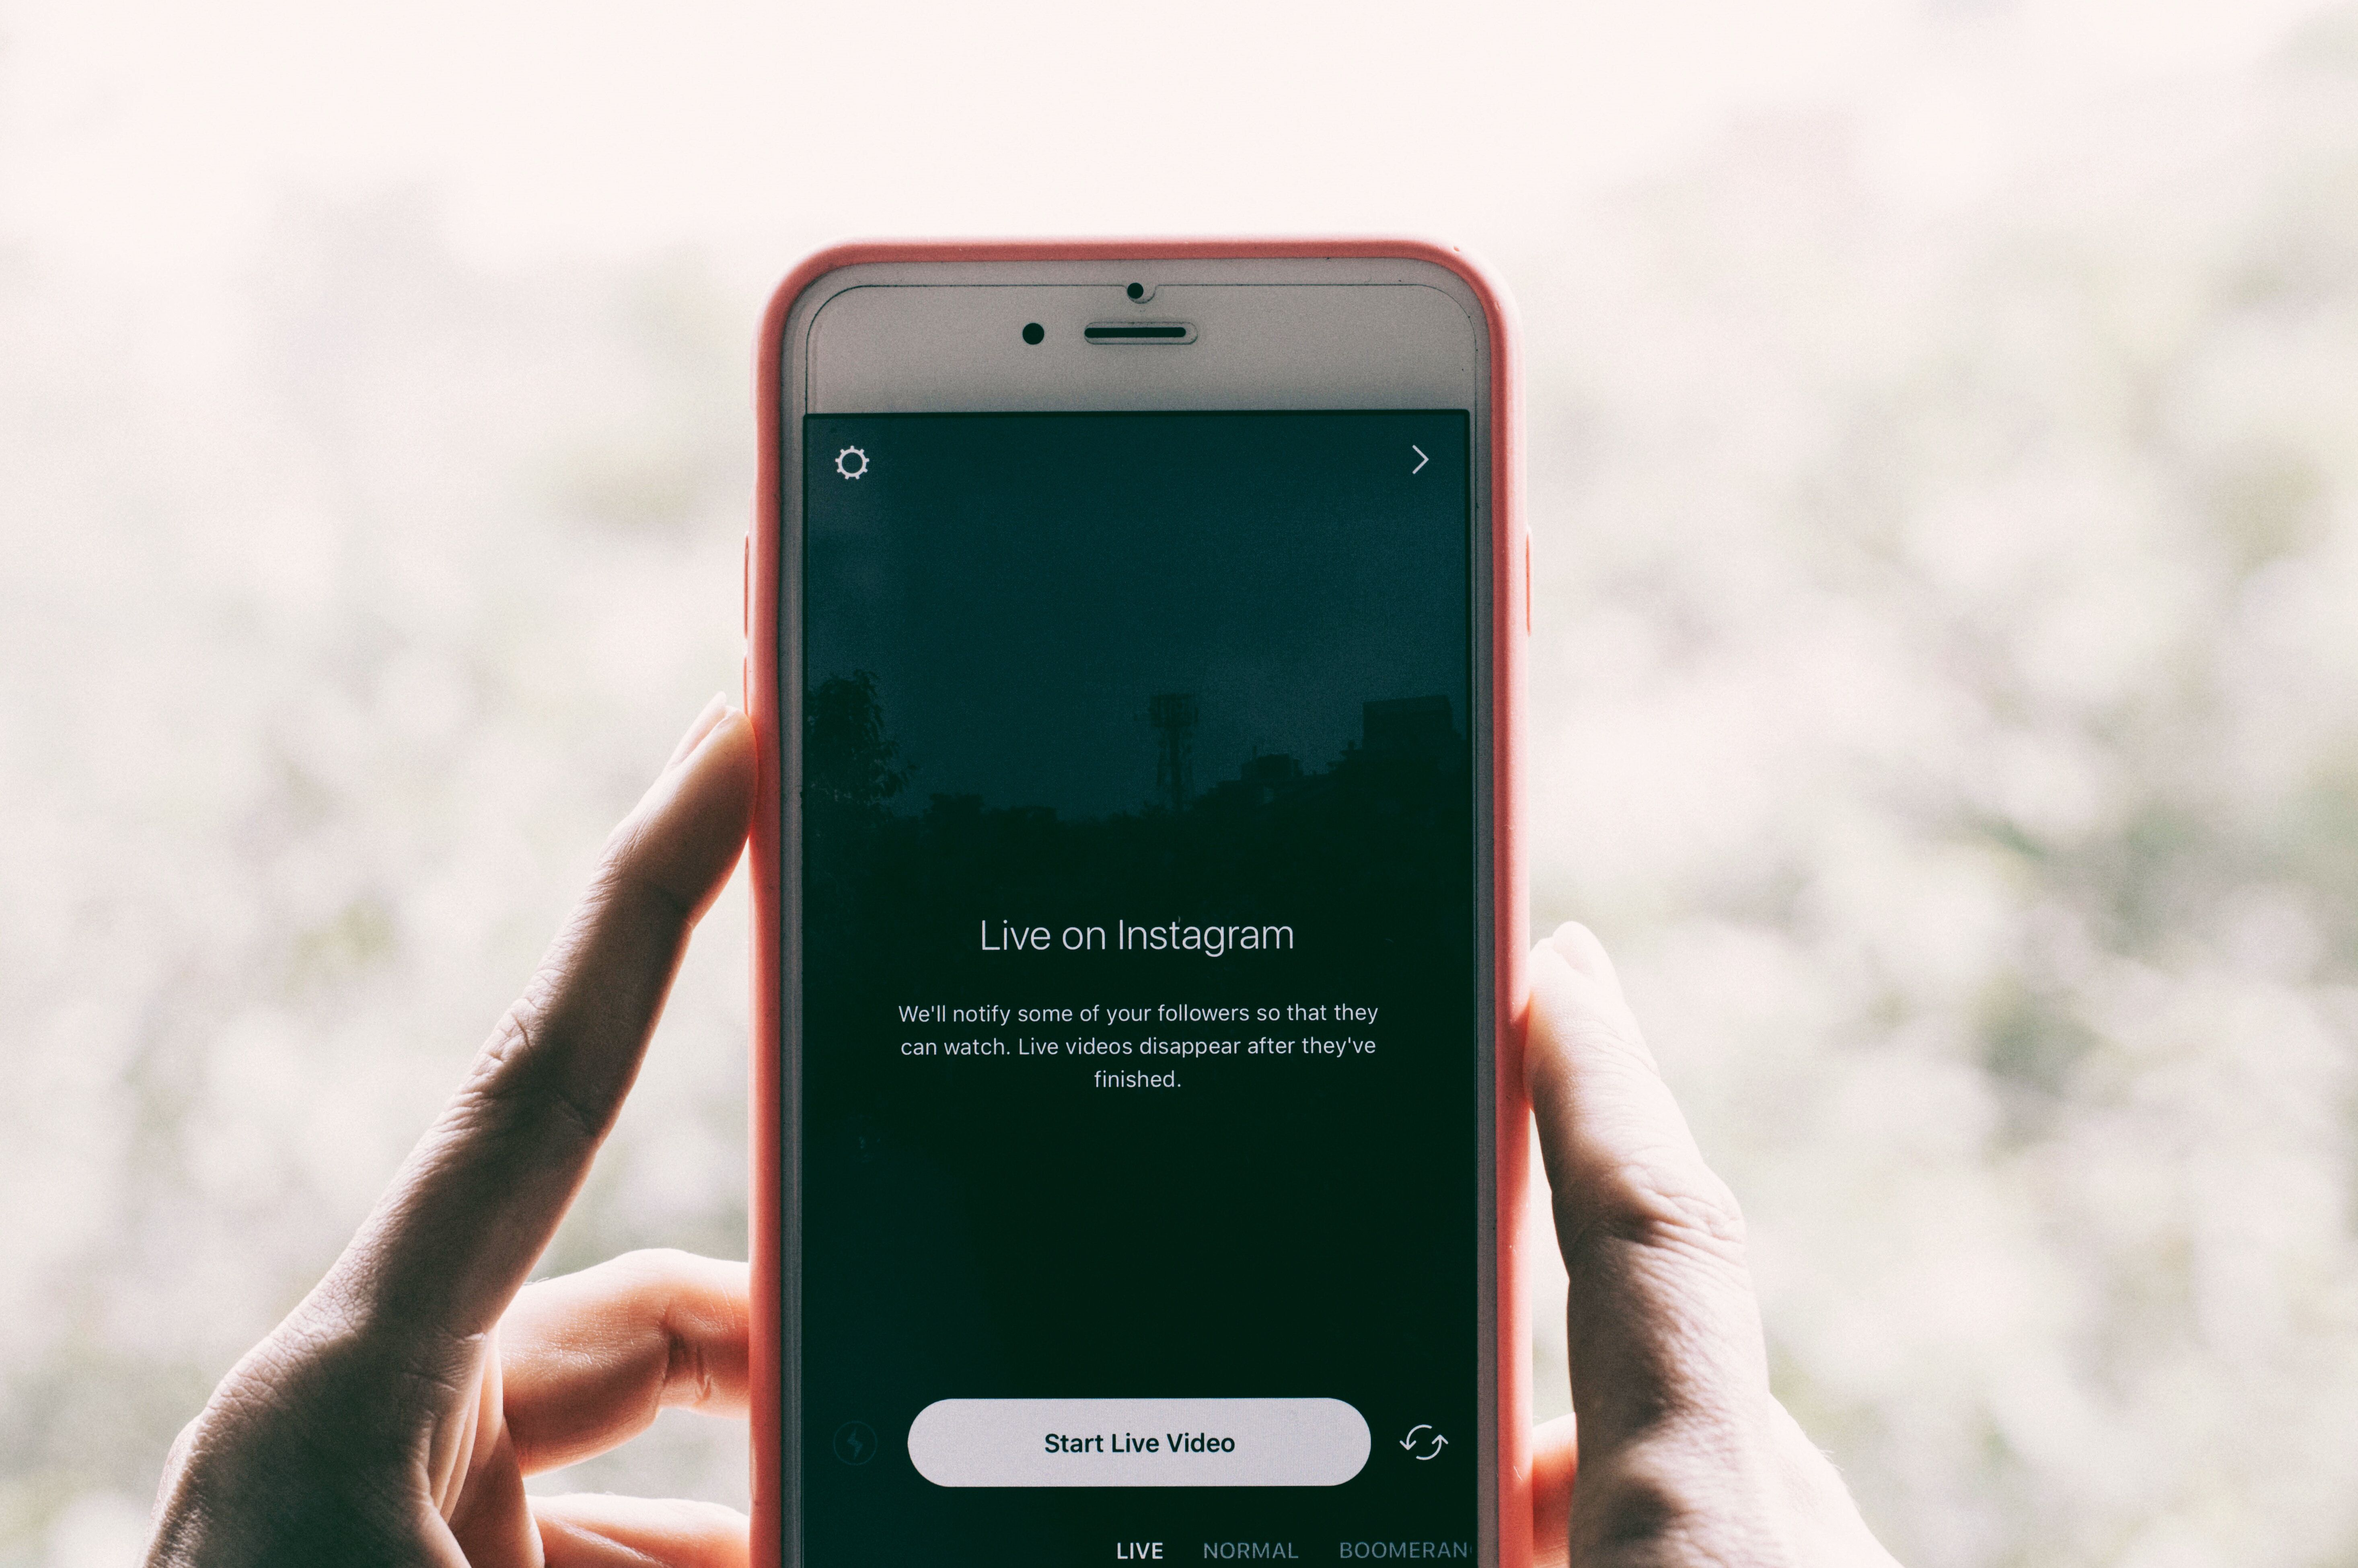 A person holding up a smartphone and getting ready to go live on Instagram